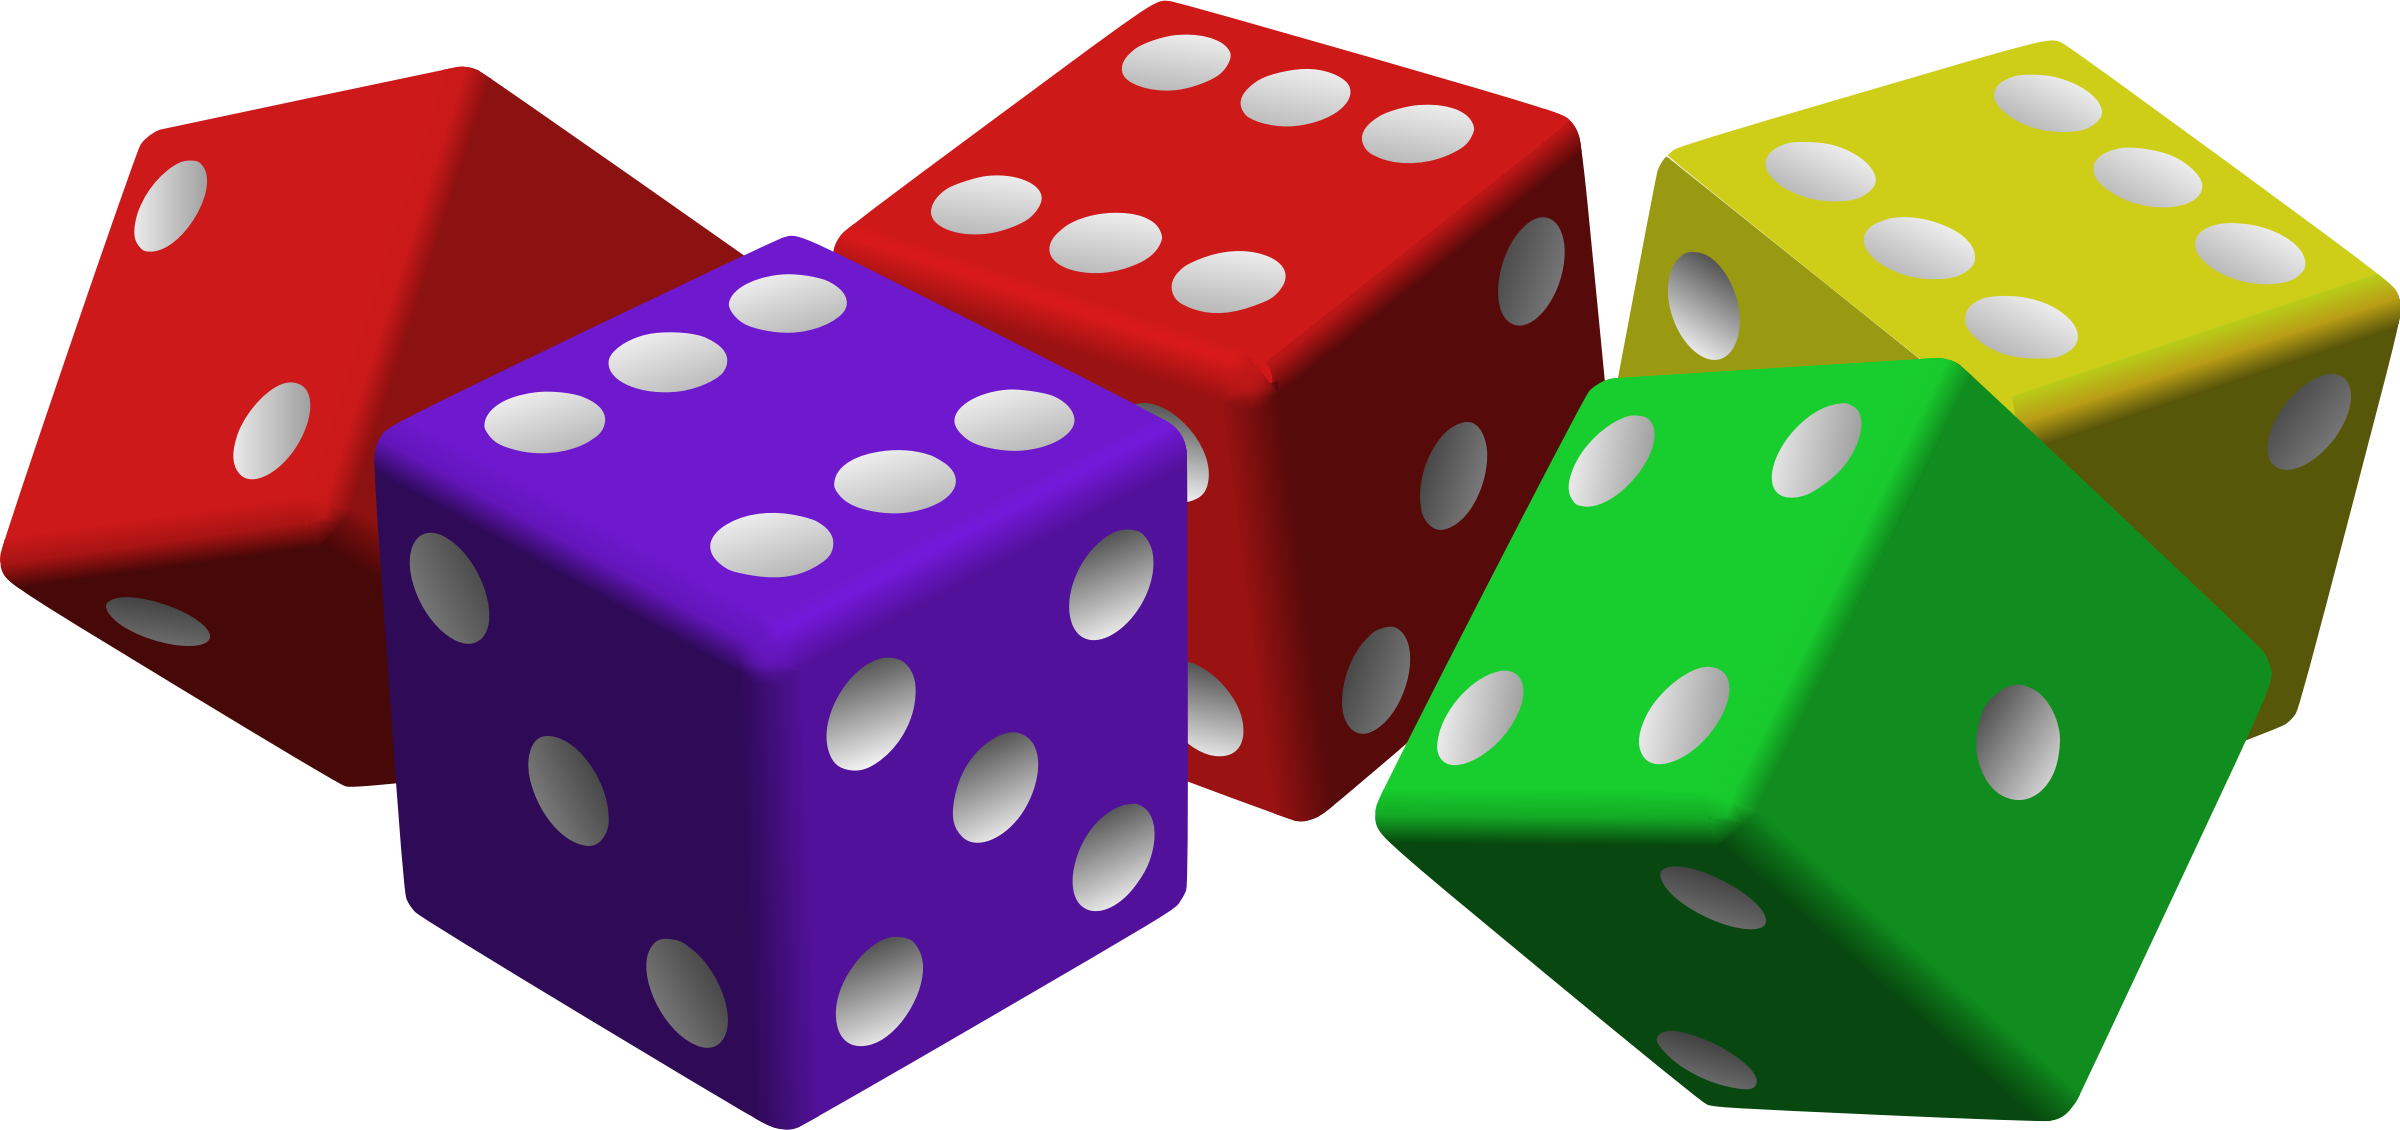 Dice clipart different color. Five colored big image